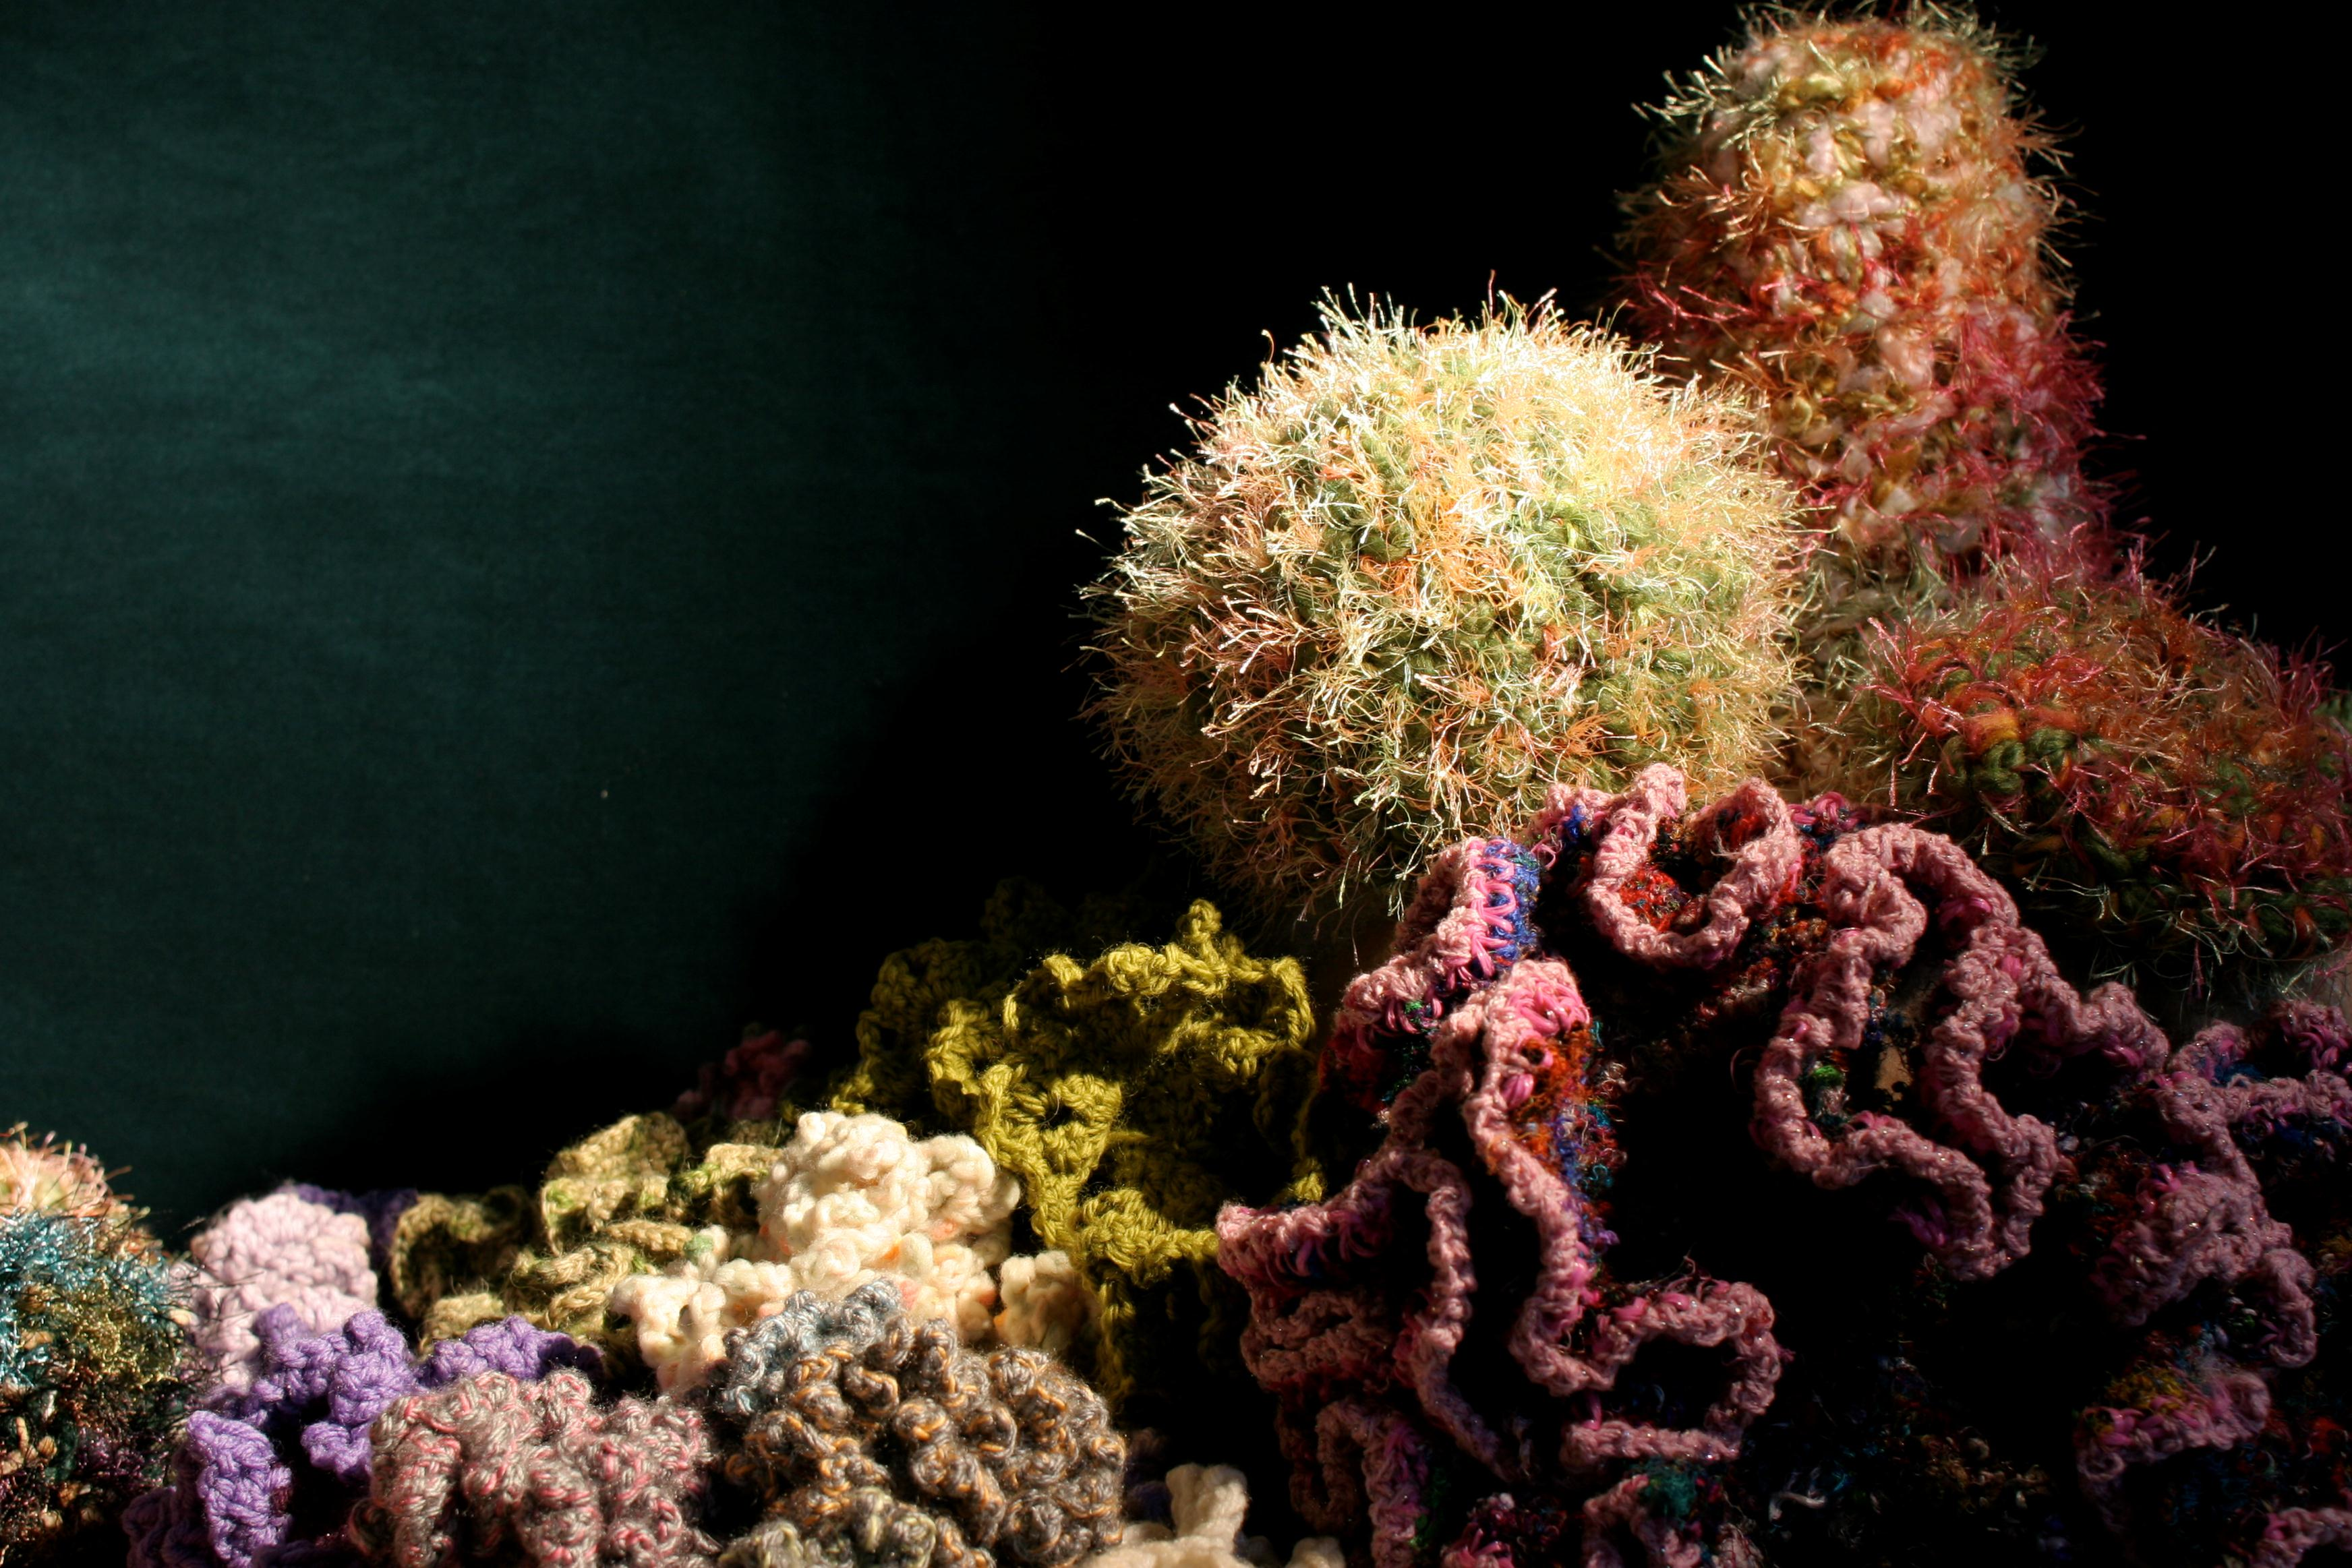 Crochet Coral Reef by Margaret and Christine Wertheim and the Institute For Figuring (featuring sea slug by Marianne Midelberg). Photo © IFF by Alyssa Gorelick